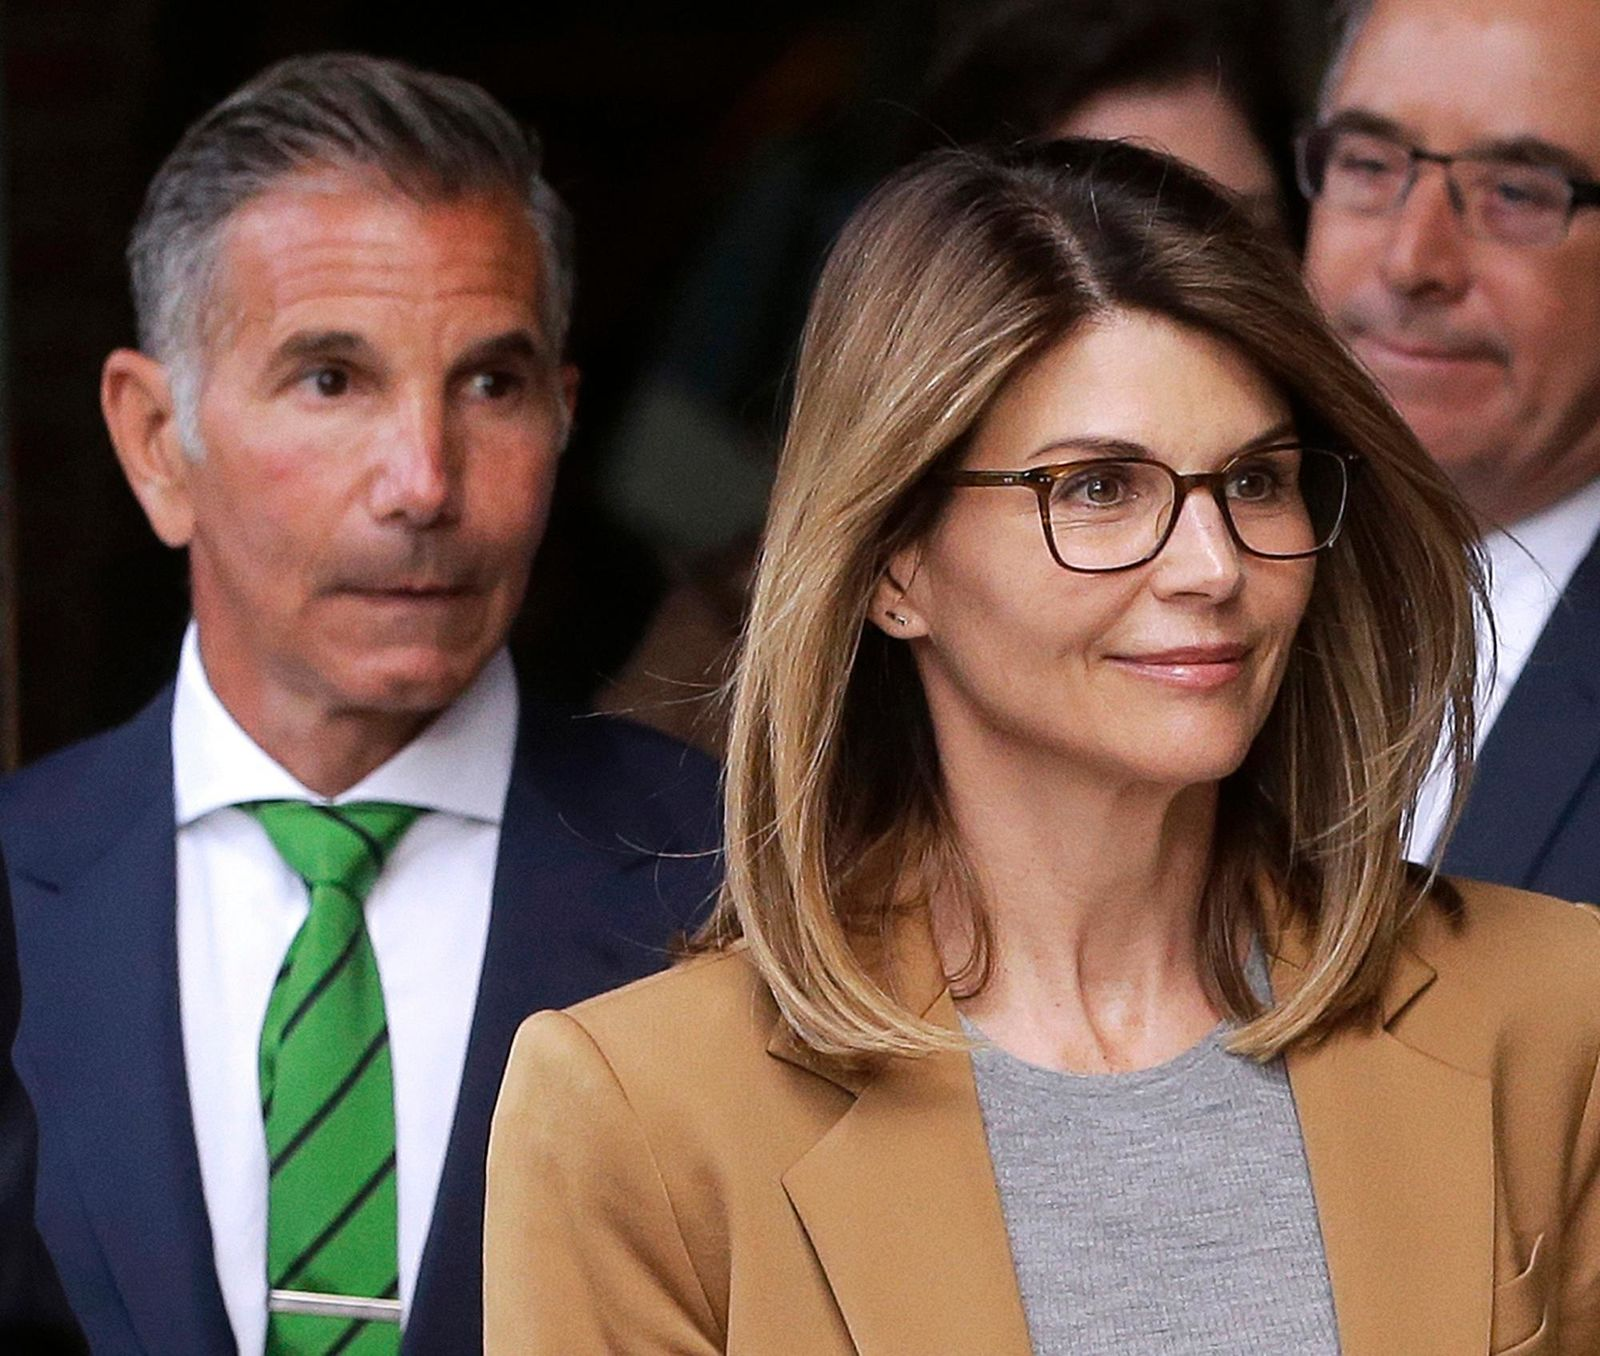 FILE - In this April 3, 2019, file photo, actress Lori Loughlin, front, and husband, clothing designer Mossimo Giannulli, left, leave federal court in Boston after facing charges in a nationwide college admissions bribery scandal. (AP Photo/Steven Senne, File)